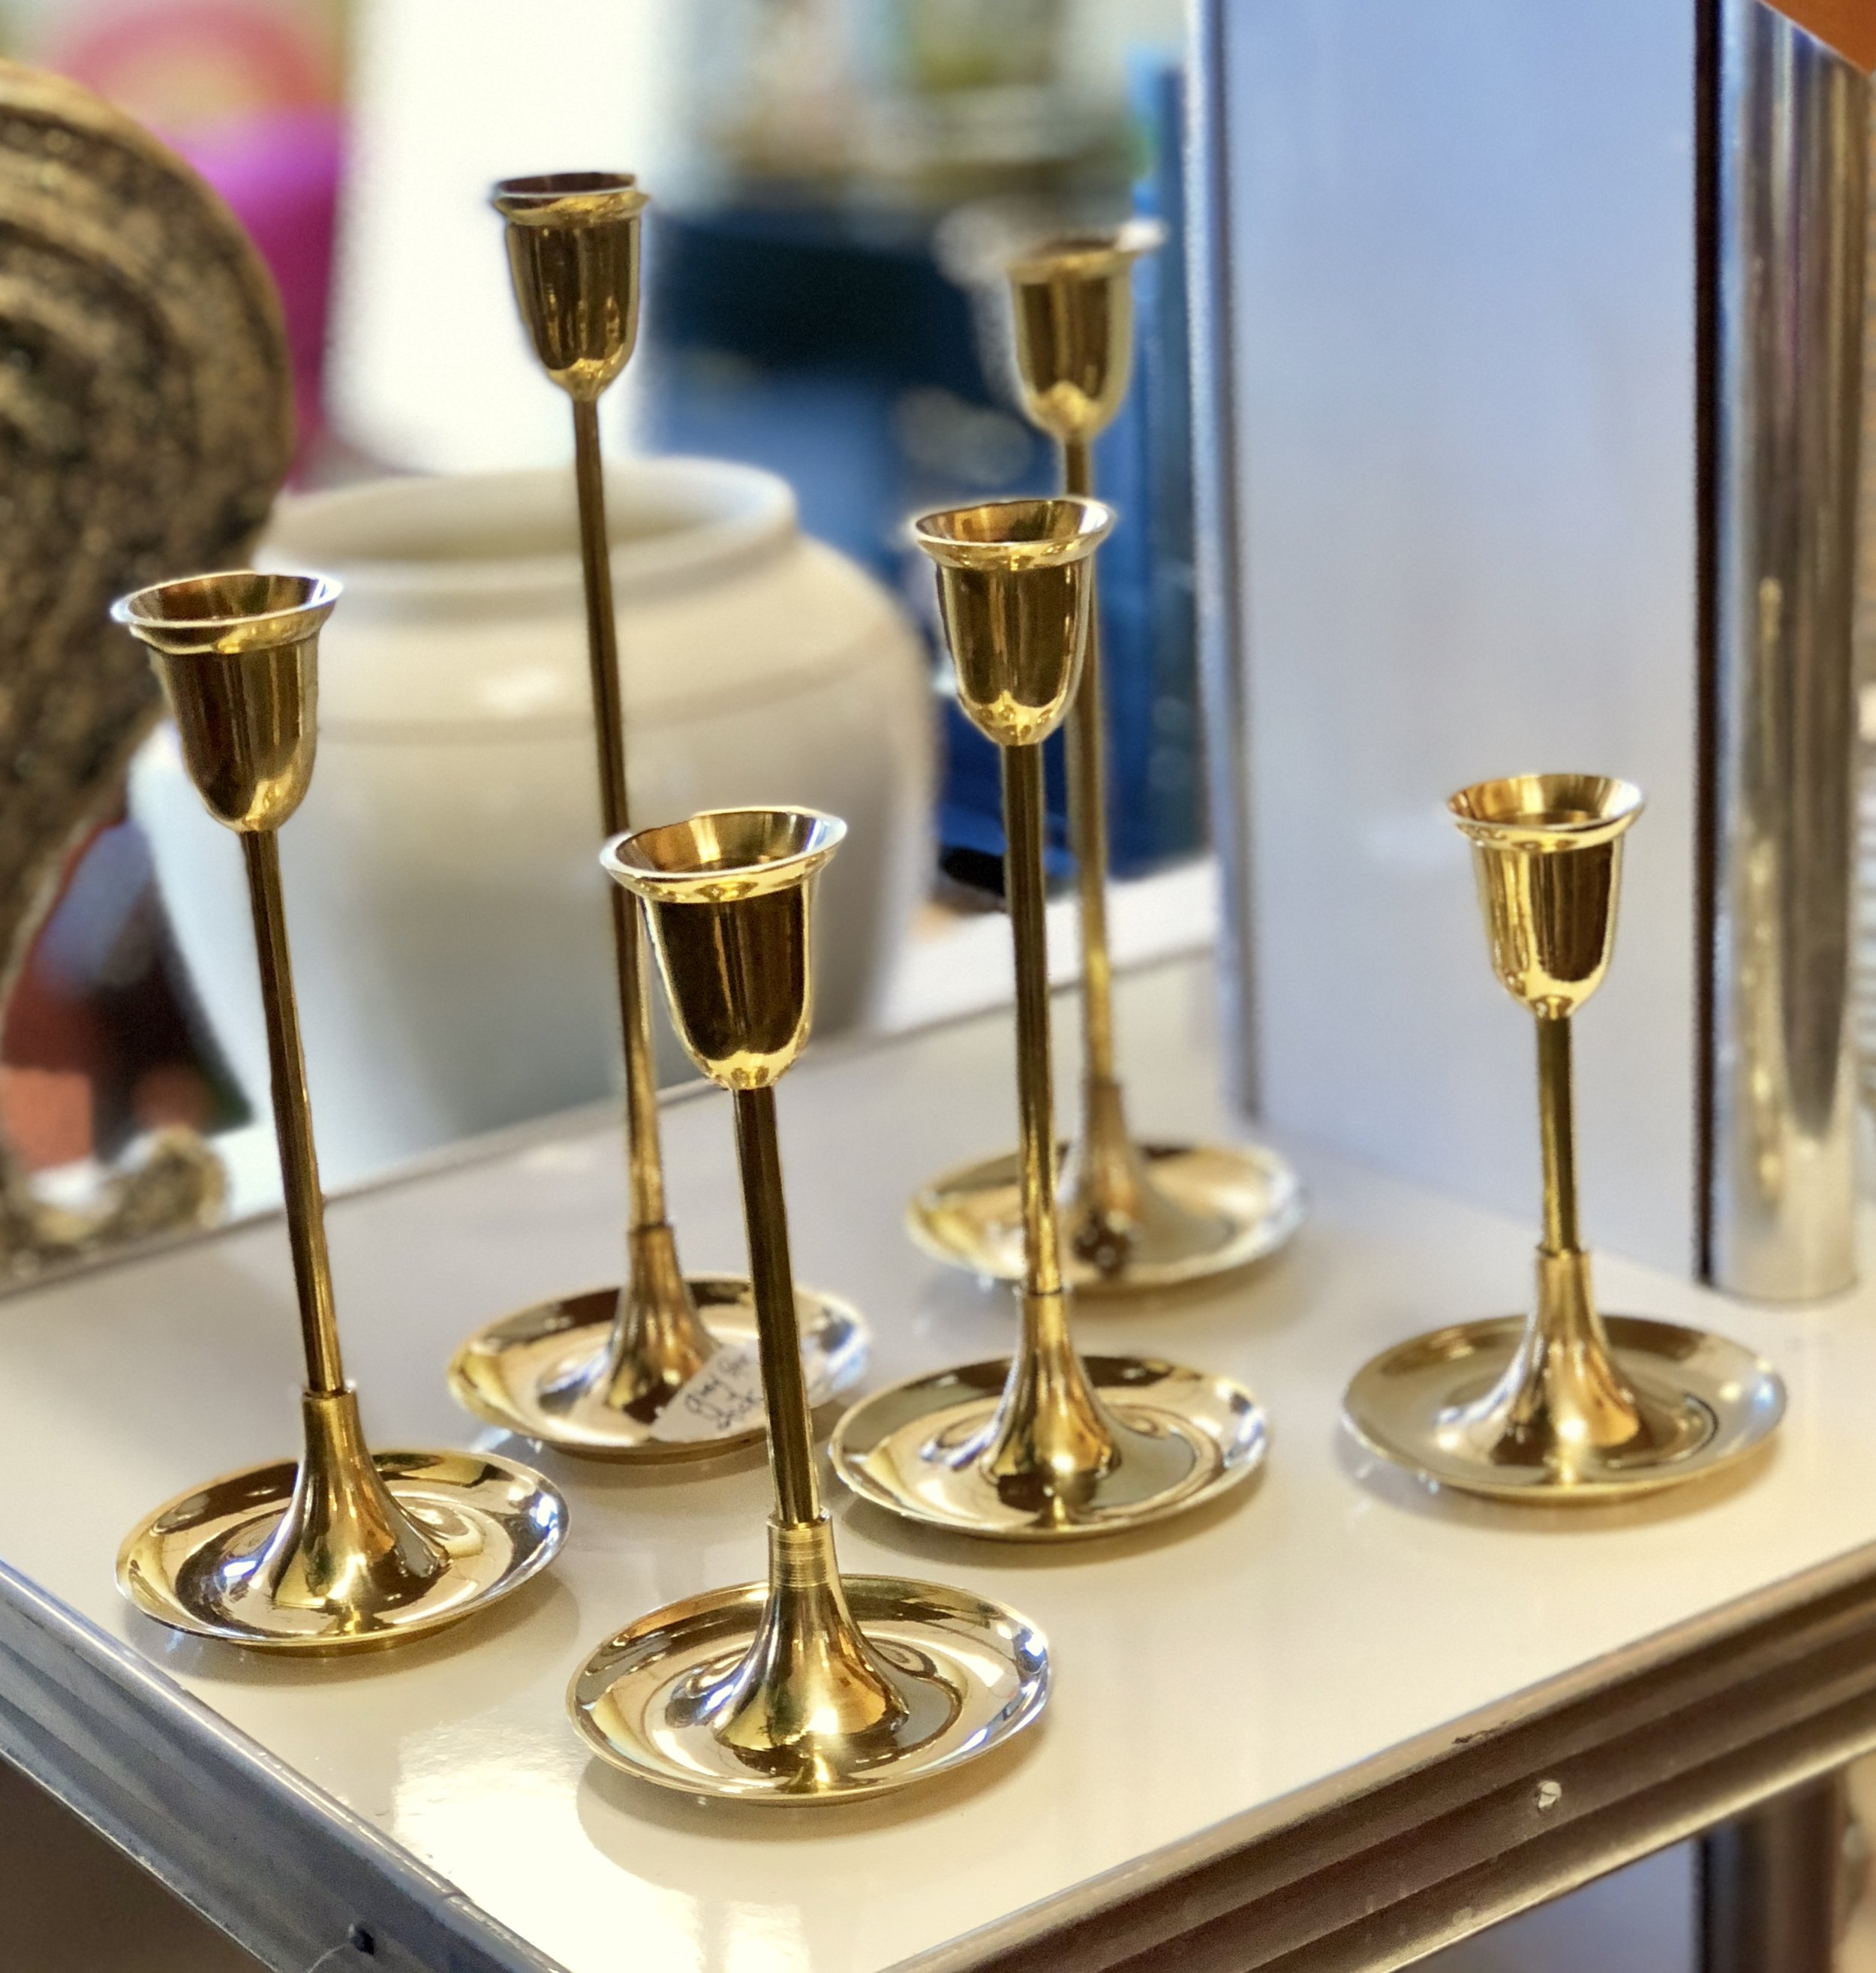 Imagine the candlelit dinner with this modern, pencil thin brass candlesticks glimmering with blue toned toppers.